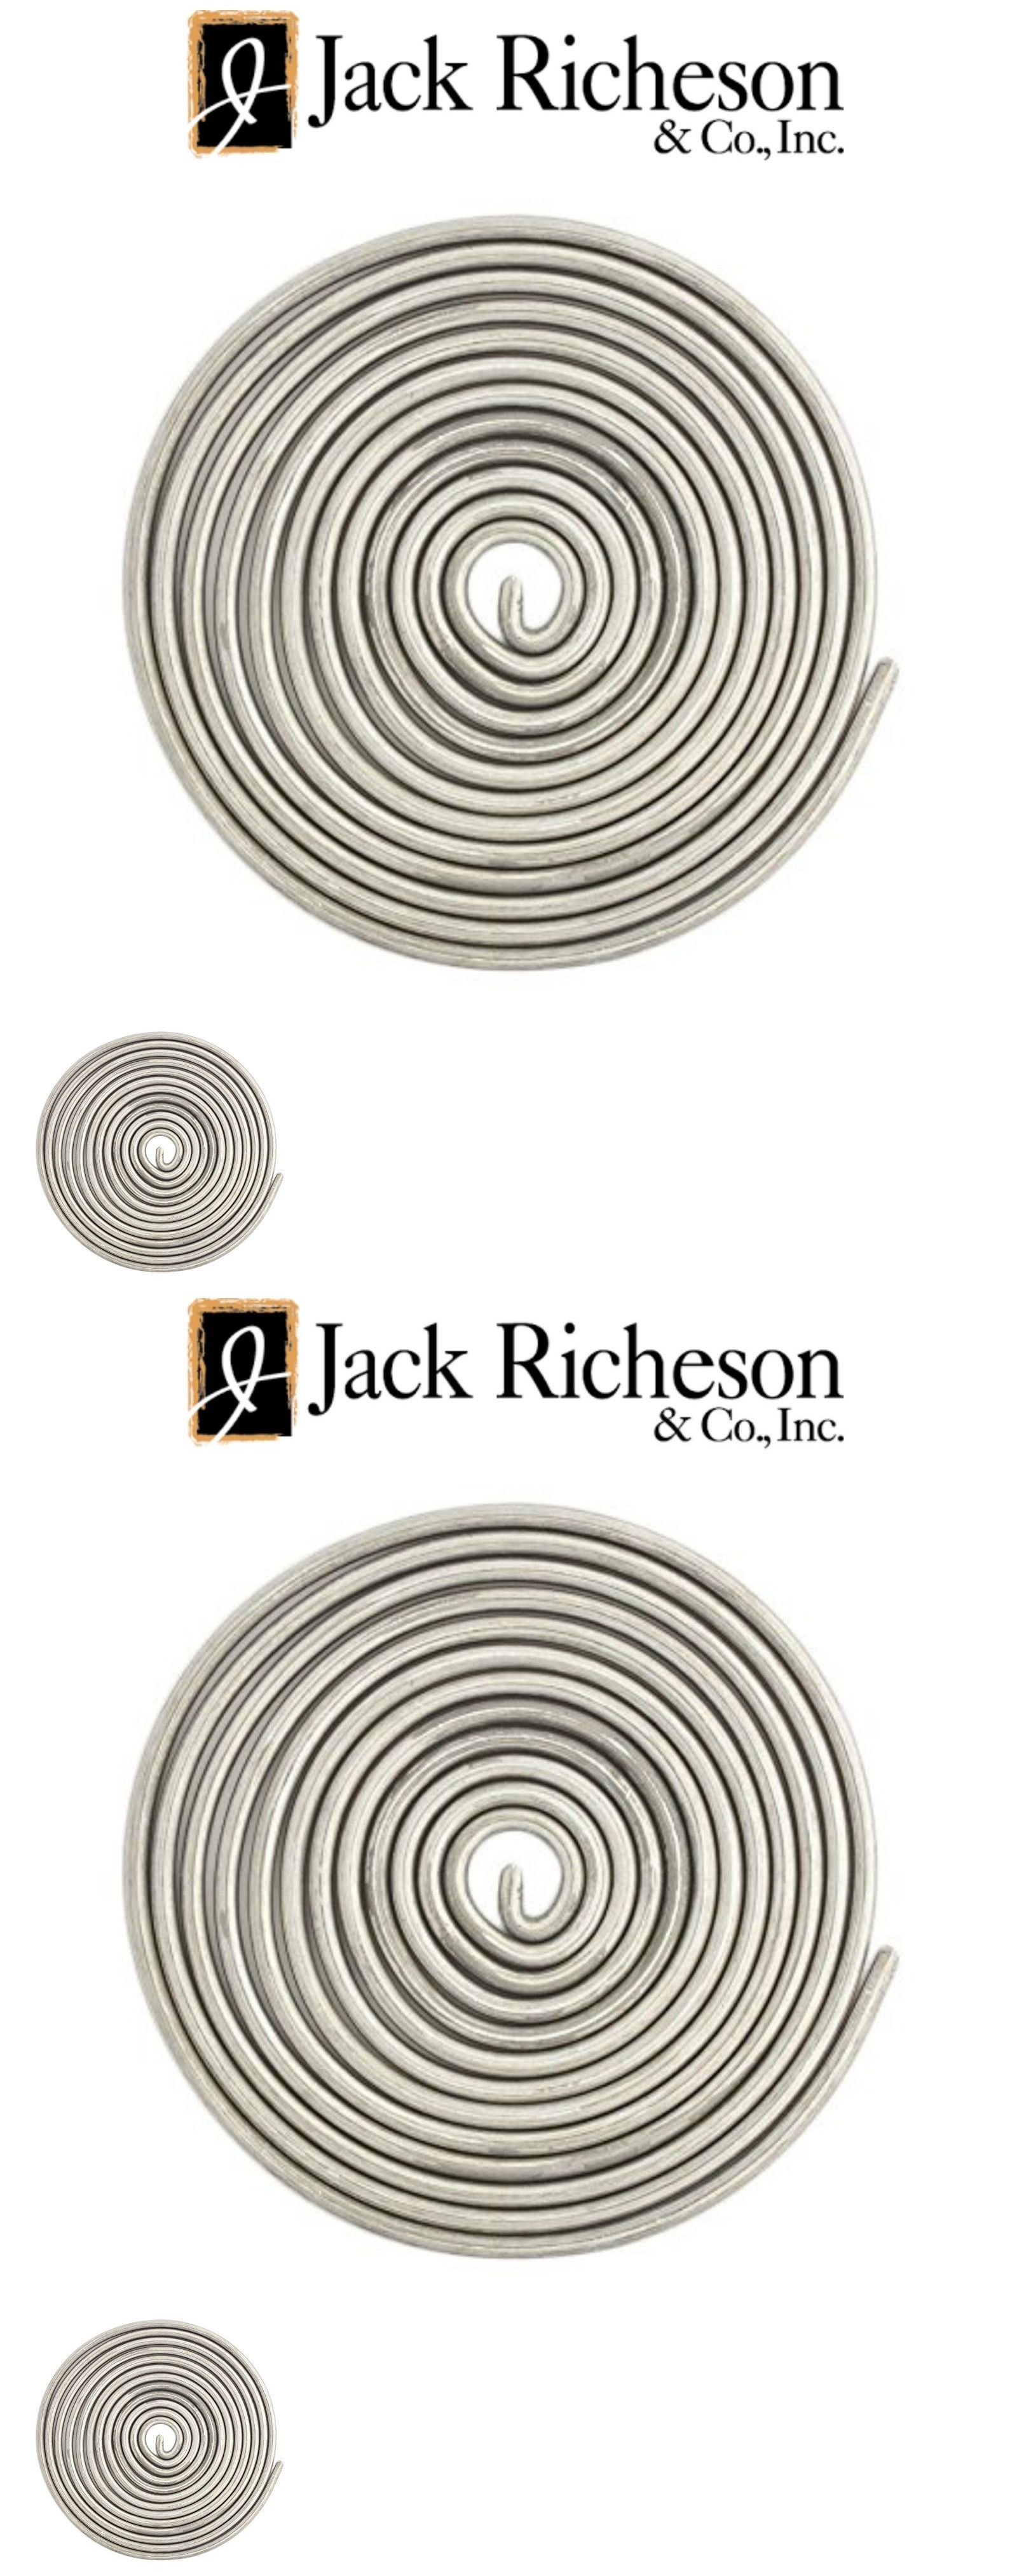 Jack Richeson 400340 10-Gauge Armature Wire 20-Feet by 1//8-Inch Pack of 4